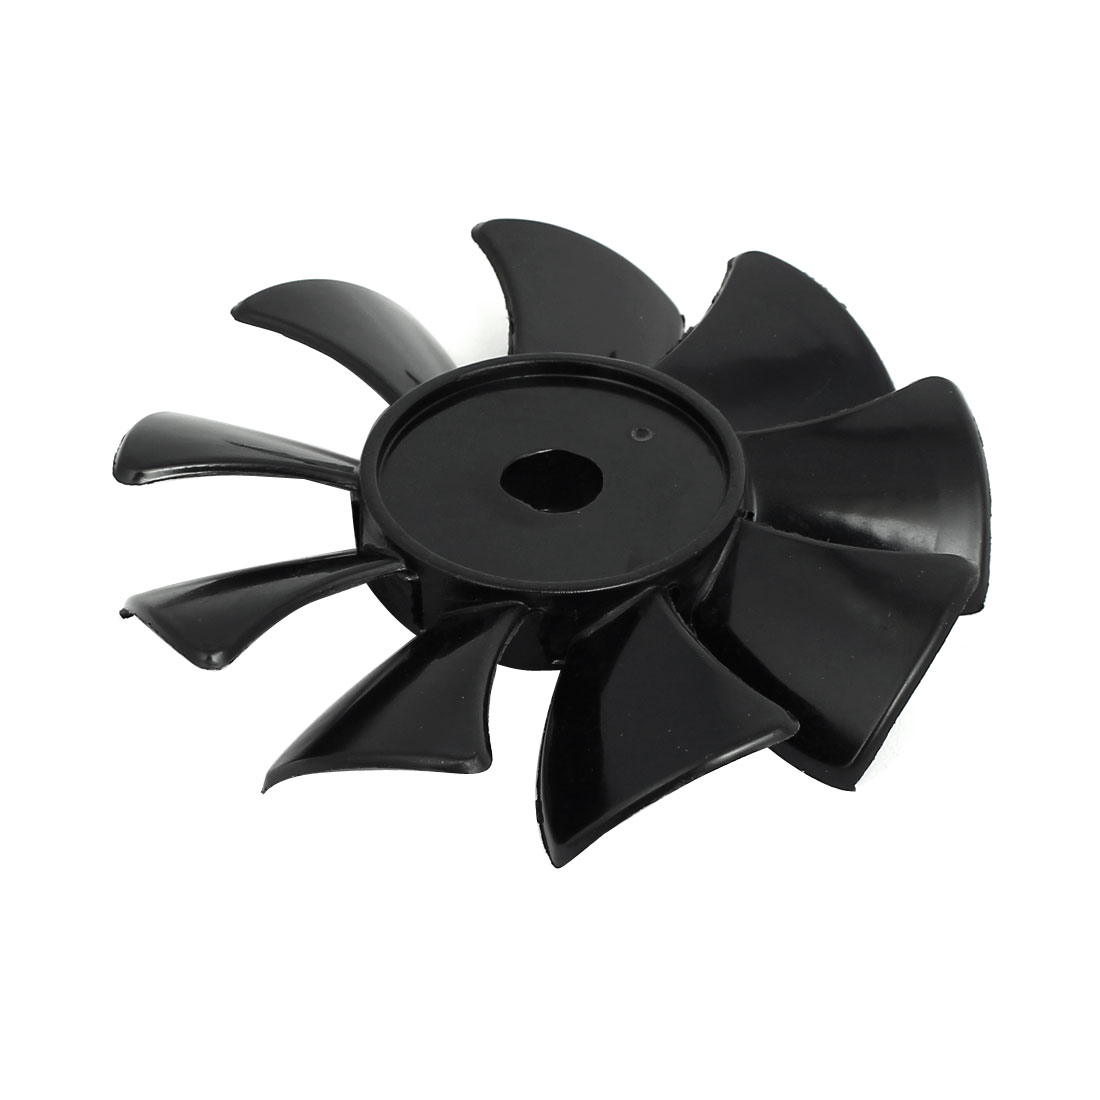 550W/750W 115mm Dia 9 Vane Air Compressor Replacement Fan Black